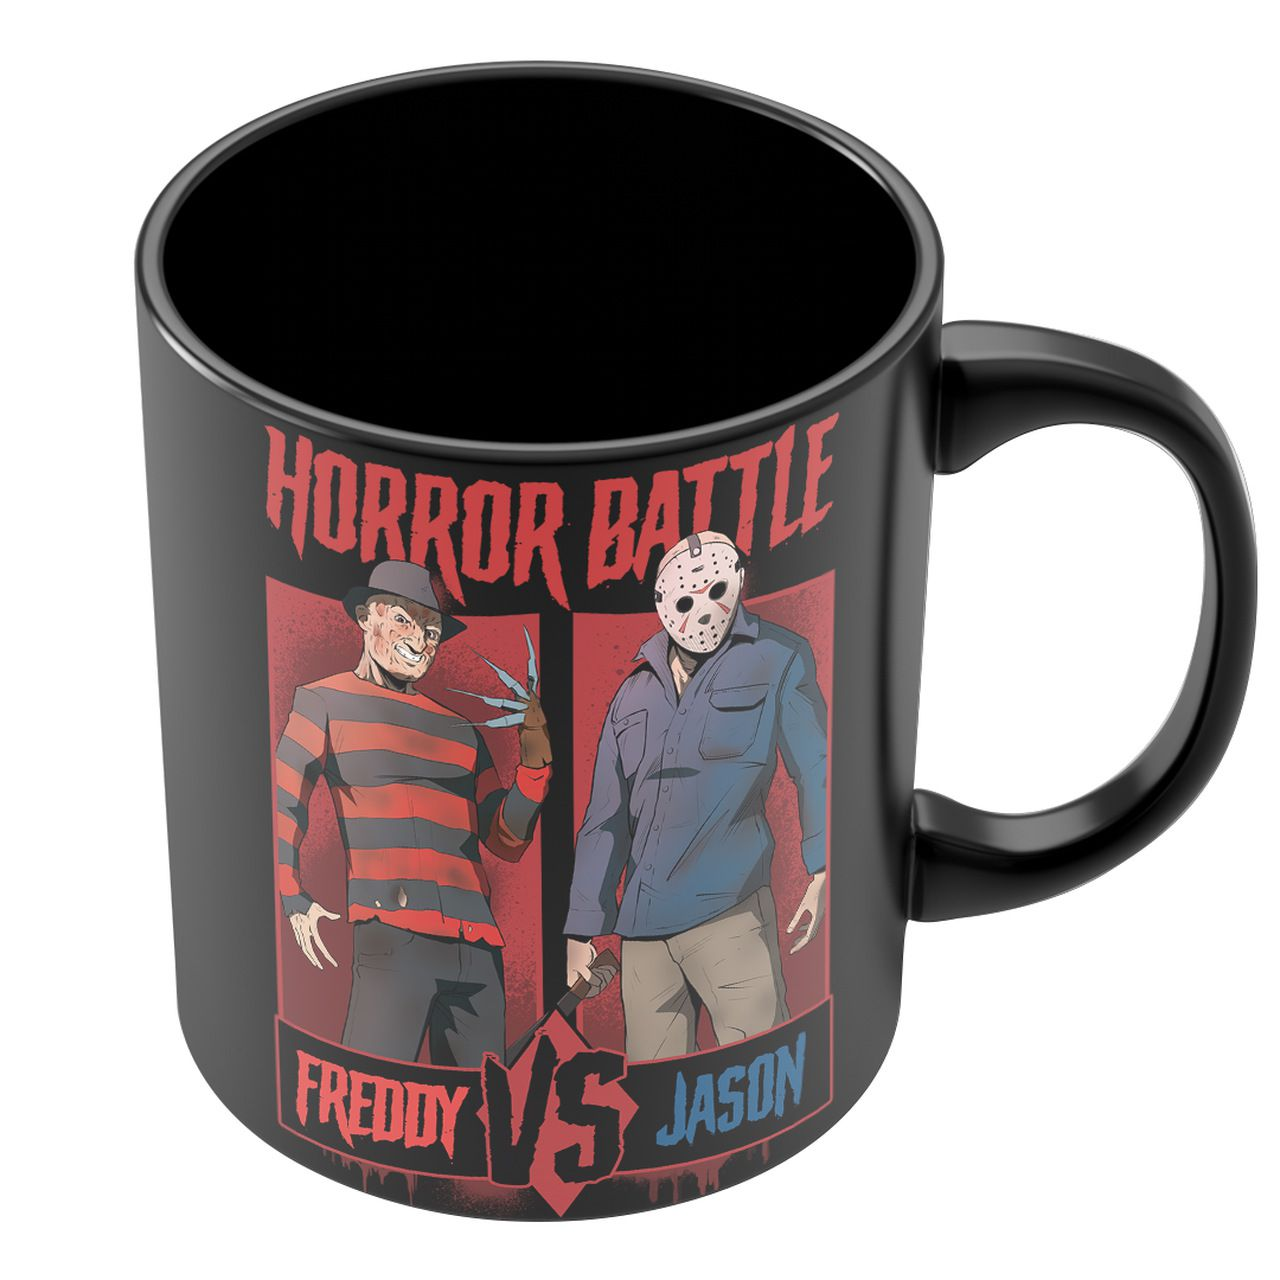 Caneca Jason X Freddy: Horror Battle - Exclusiva Toyshow